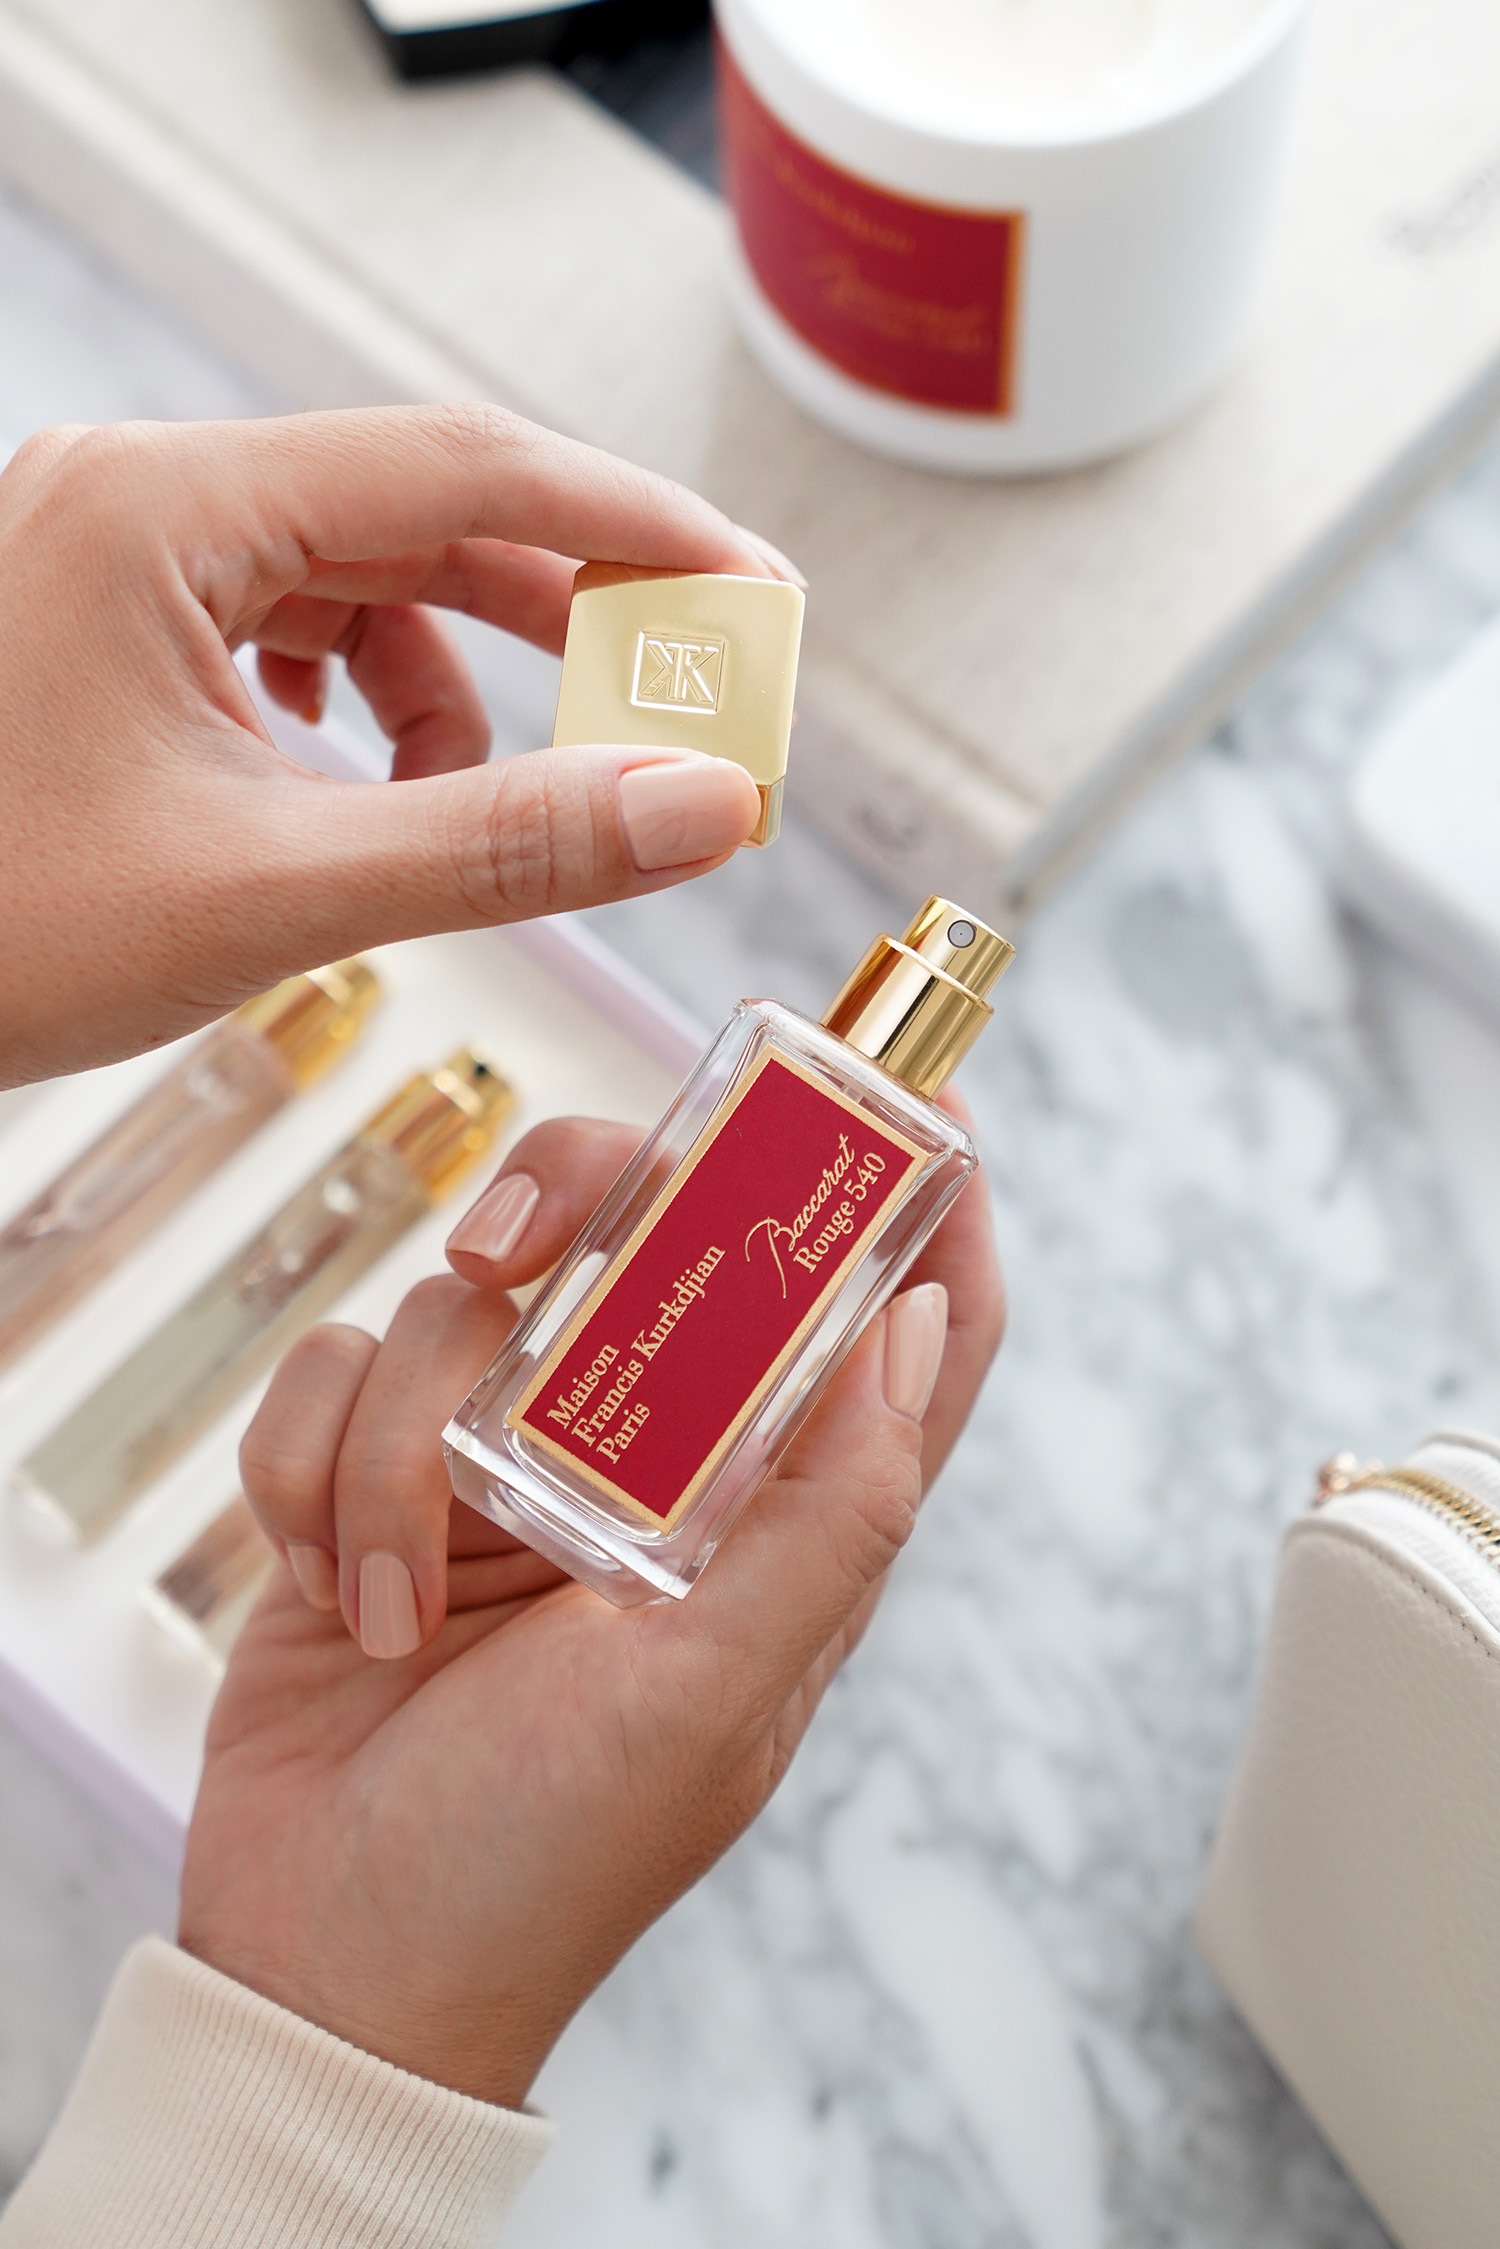 Top 20 Perfumes I'm Loving Right Now   The Beauty Look Book